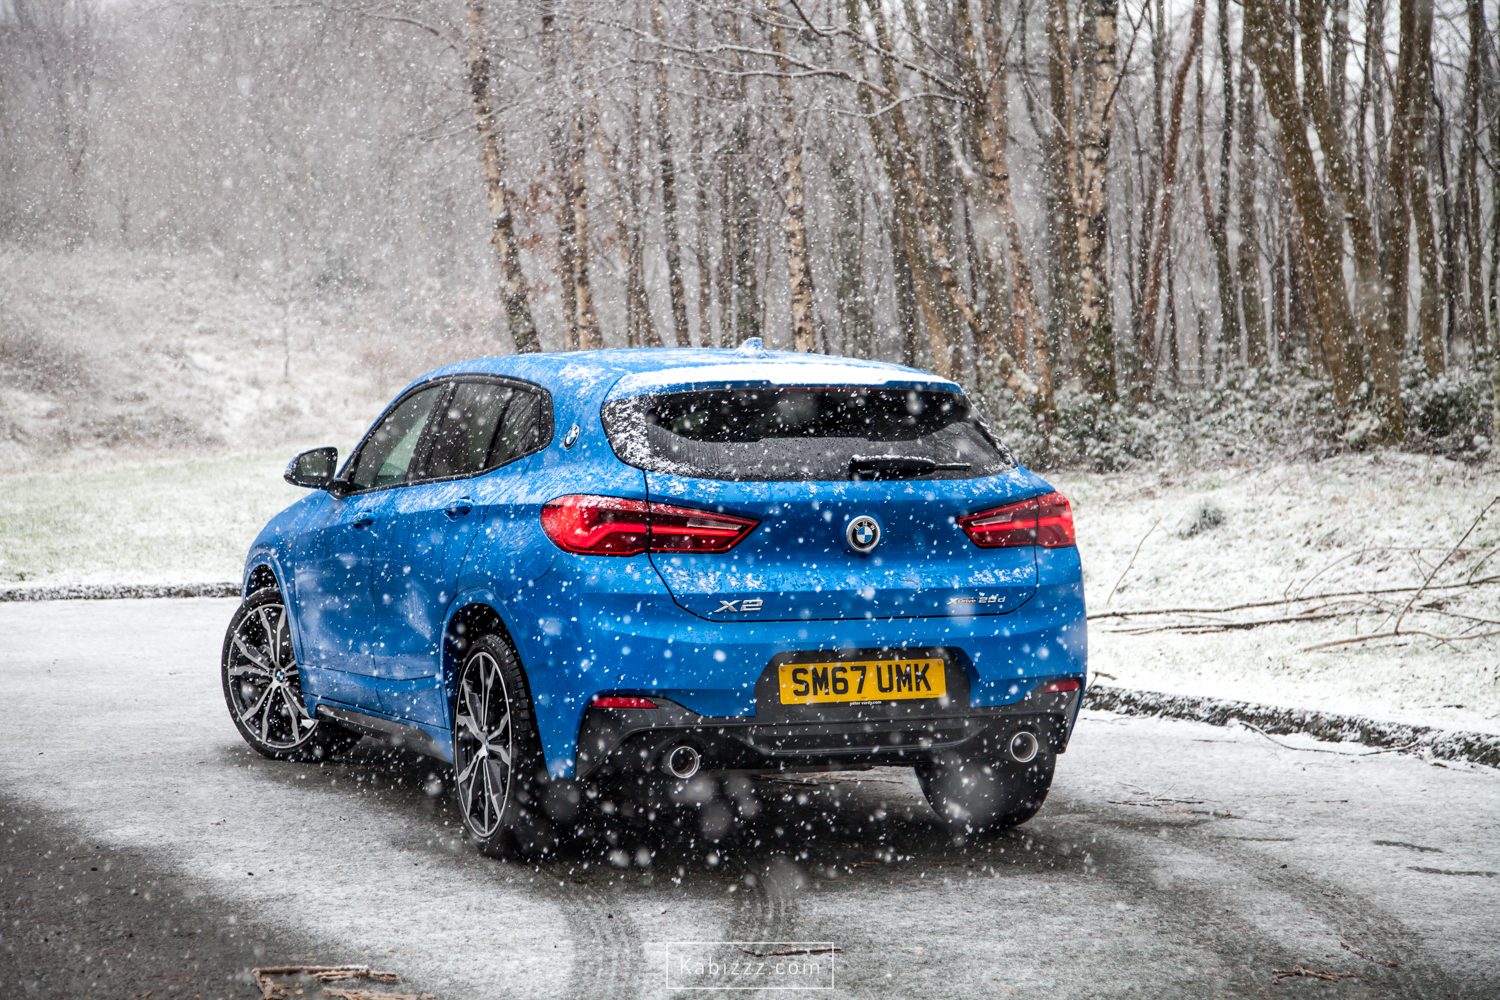 2018_bmw_x2_blue_automotive_photography_kabizzz-2.jpg